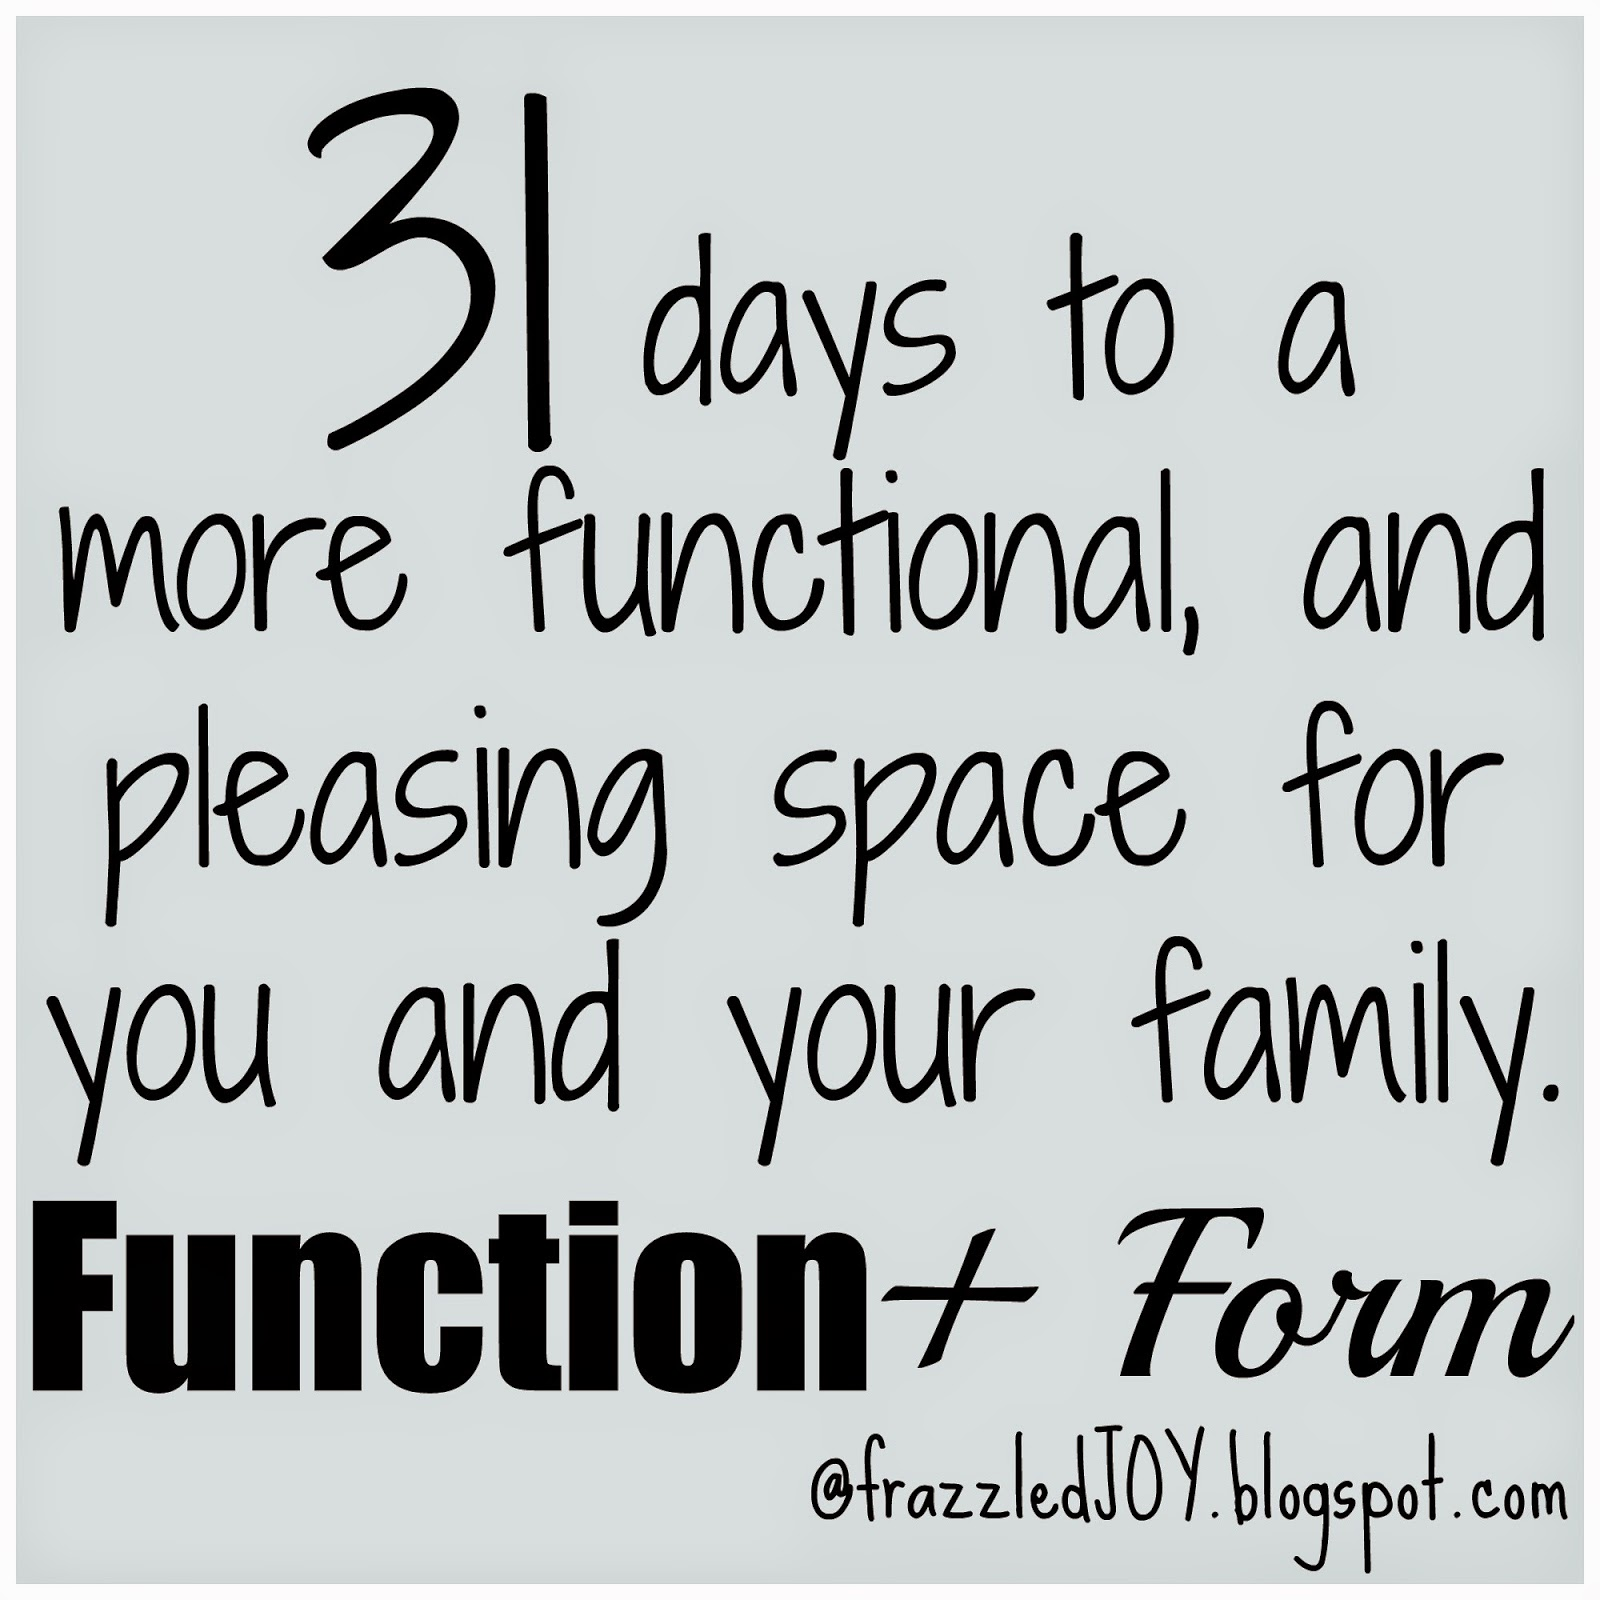 31 days series - a more functional, and pleasing space for you and your family.